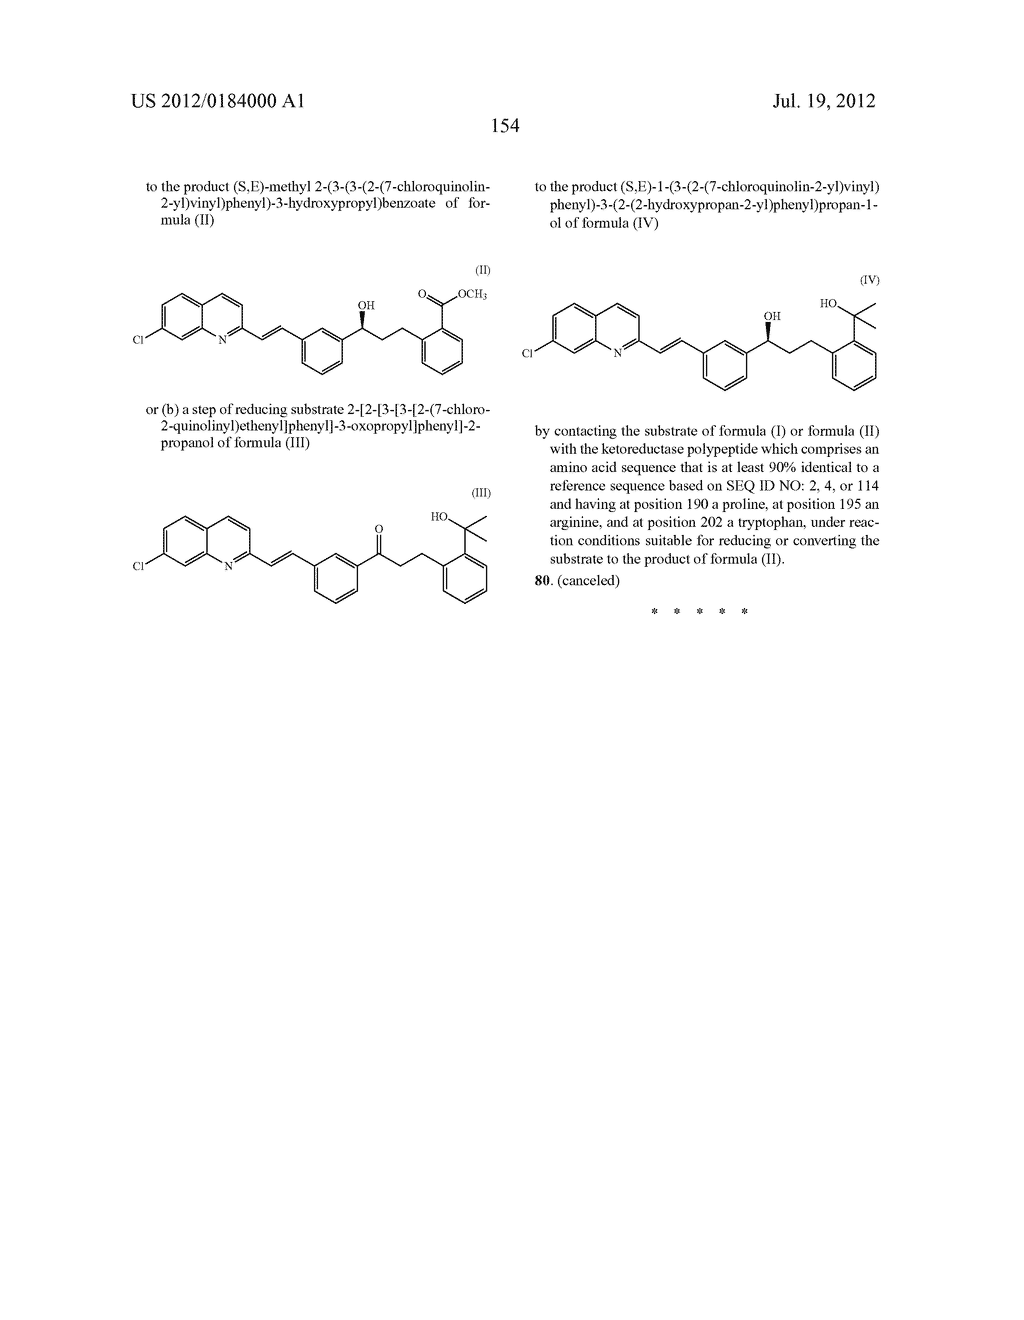 KETOREDUCTASE POLYPEPTIDES FOR THE PRODUCTION OF (S,E)-METHYL     2-(3-(3-(2-(7-CHLOROQUINOLIN-2-YL)VINYL)PHENYL)-3-HYDROXYPROPYL)BENZOATE - diagram, schematic, and image 156